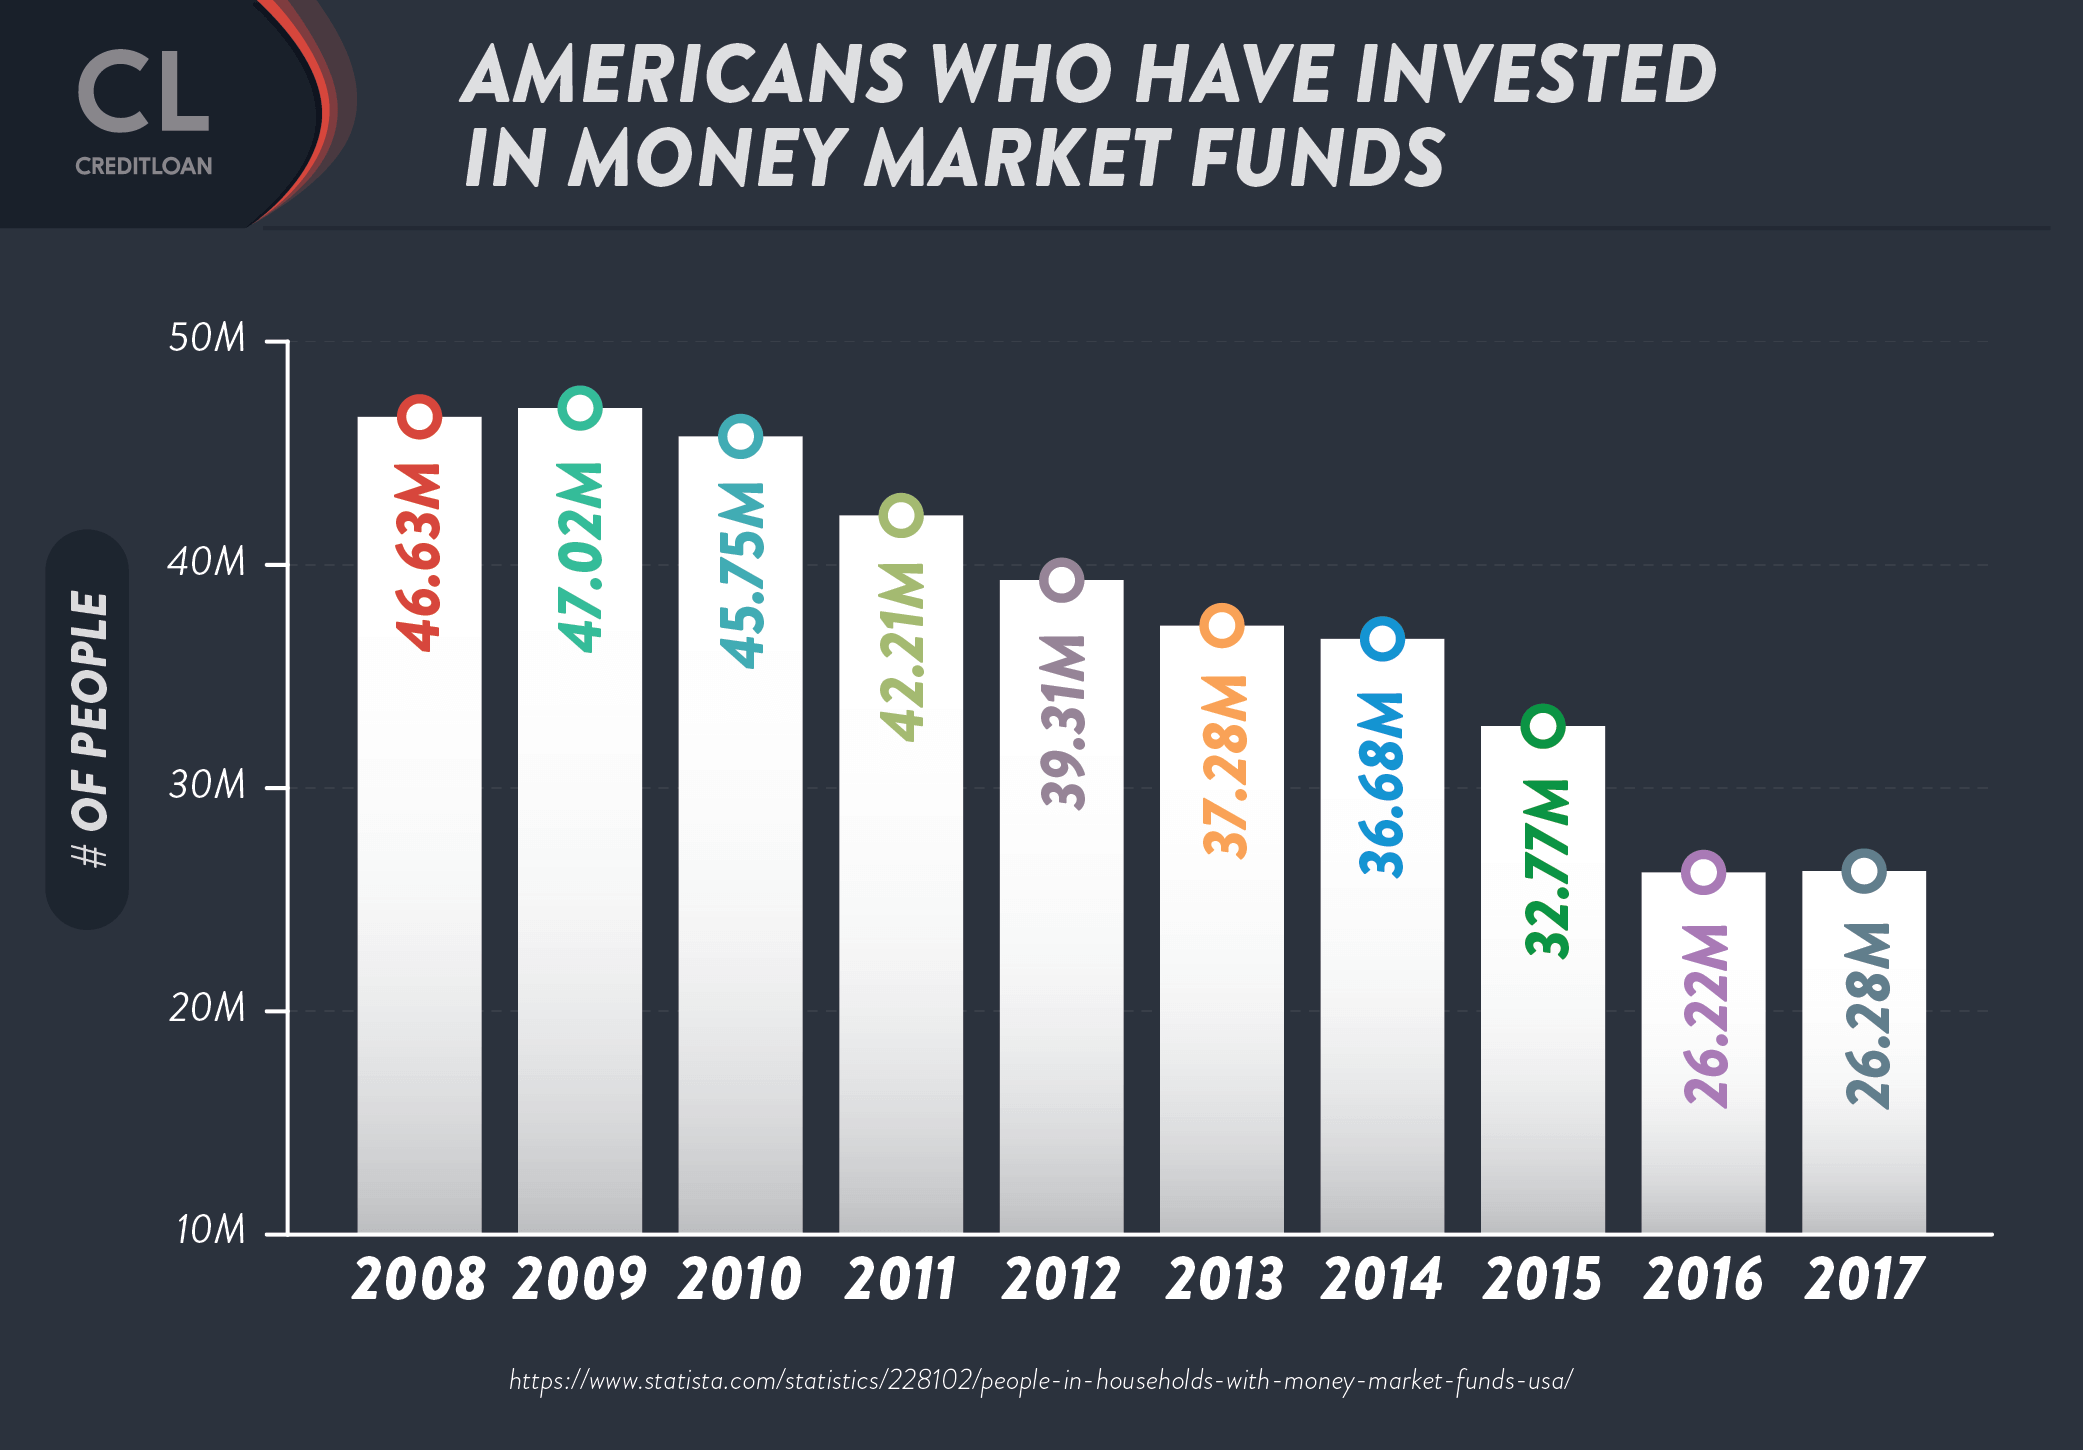 Americans who have invested in money market funds